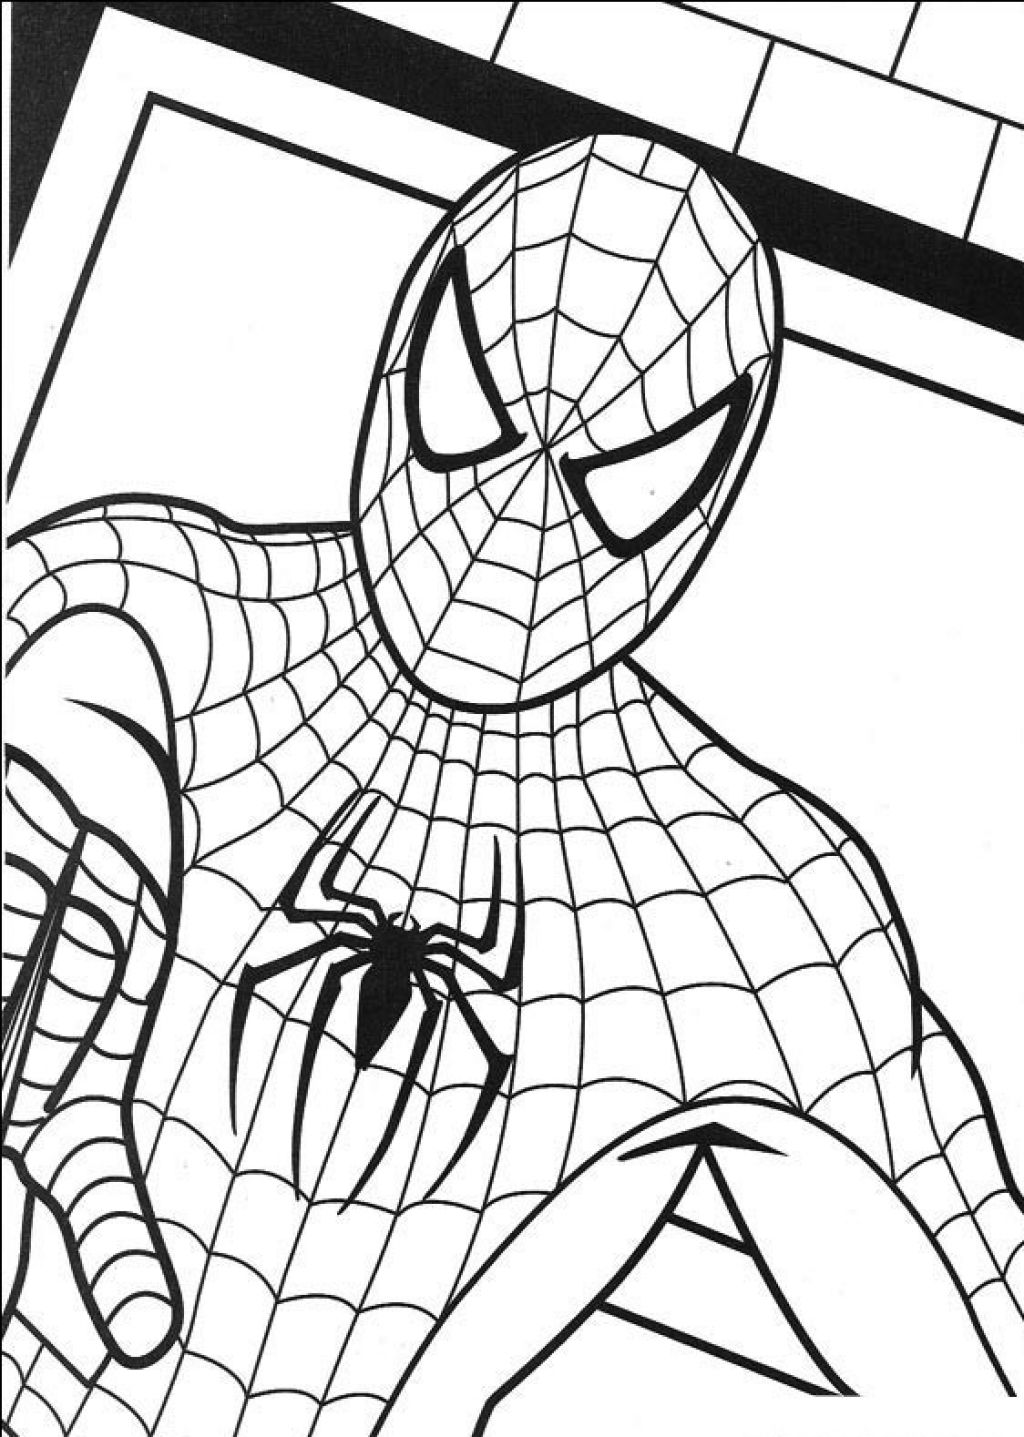 coloring sheet spiderman coloring pages coloring pages spiderman free printable coloring pages coloring spiderman coloring sheet pages